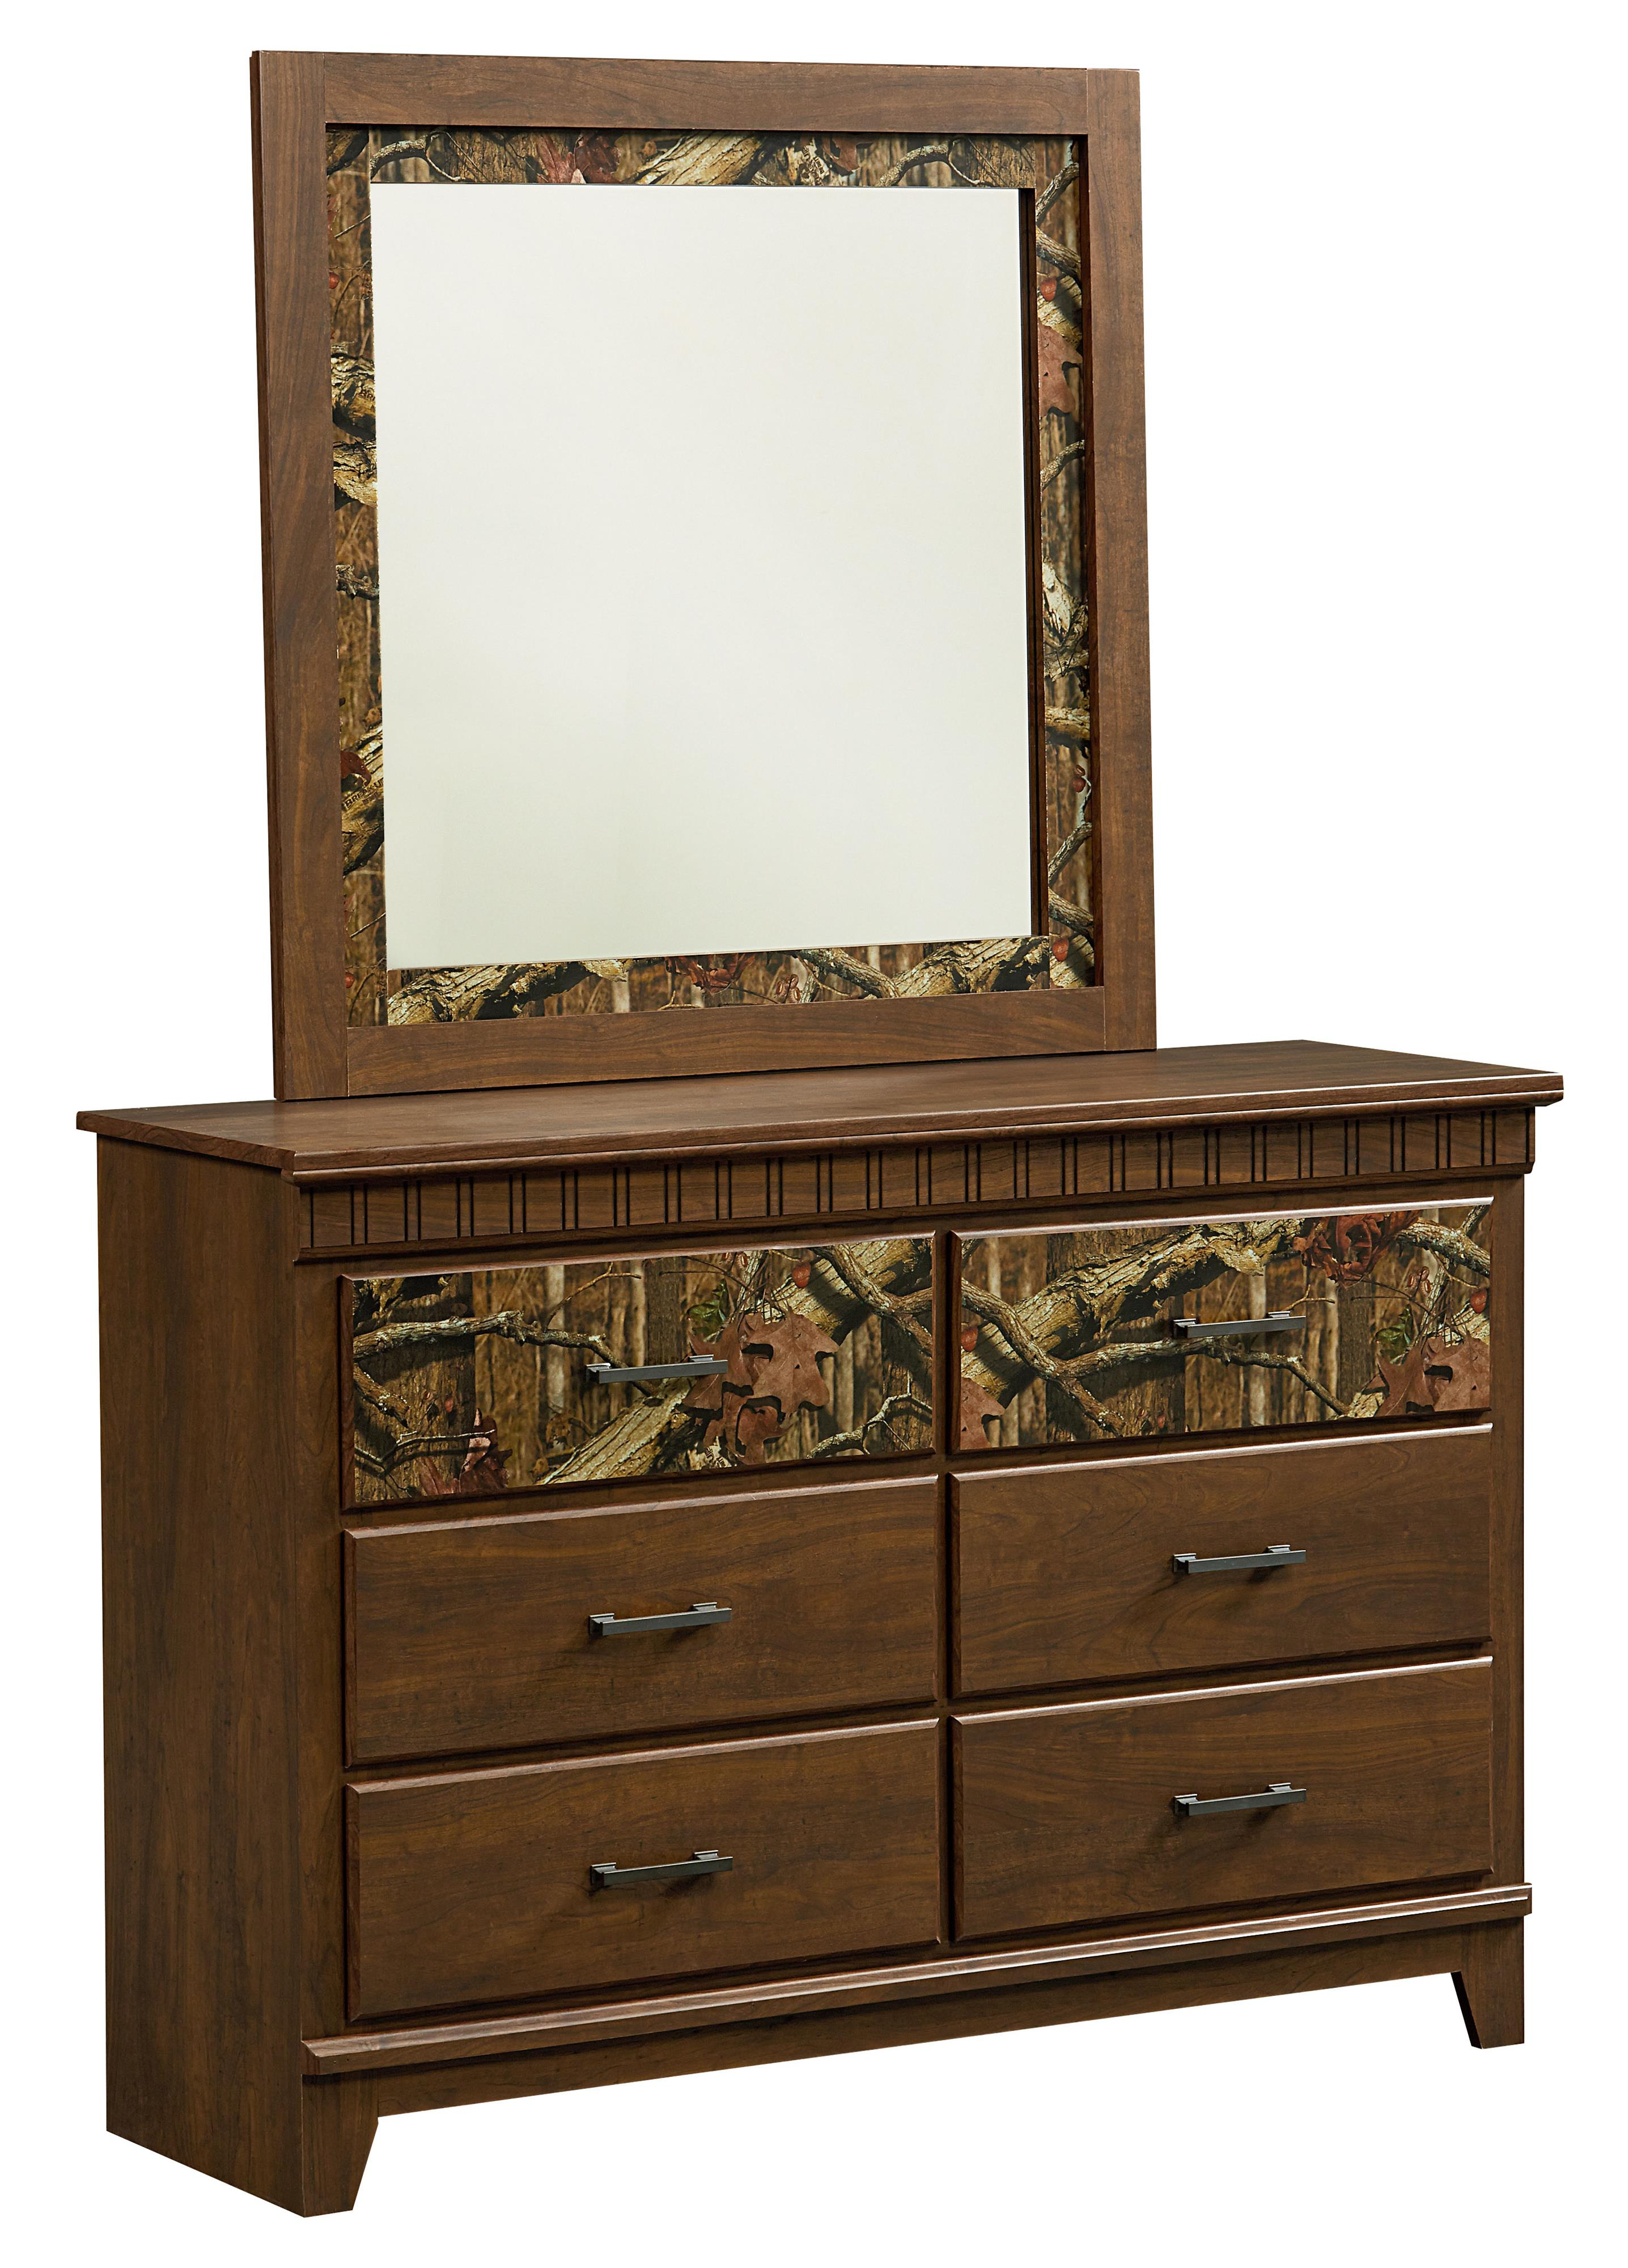 home grey today of contemporary set free corda and orchid america overstock furniture silver silvine dresser antique piece product mirror garden shipping